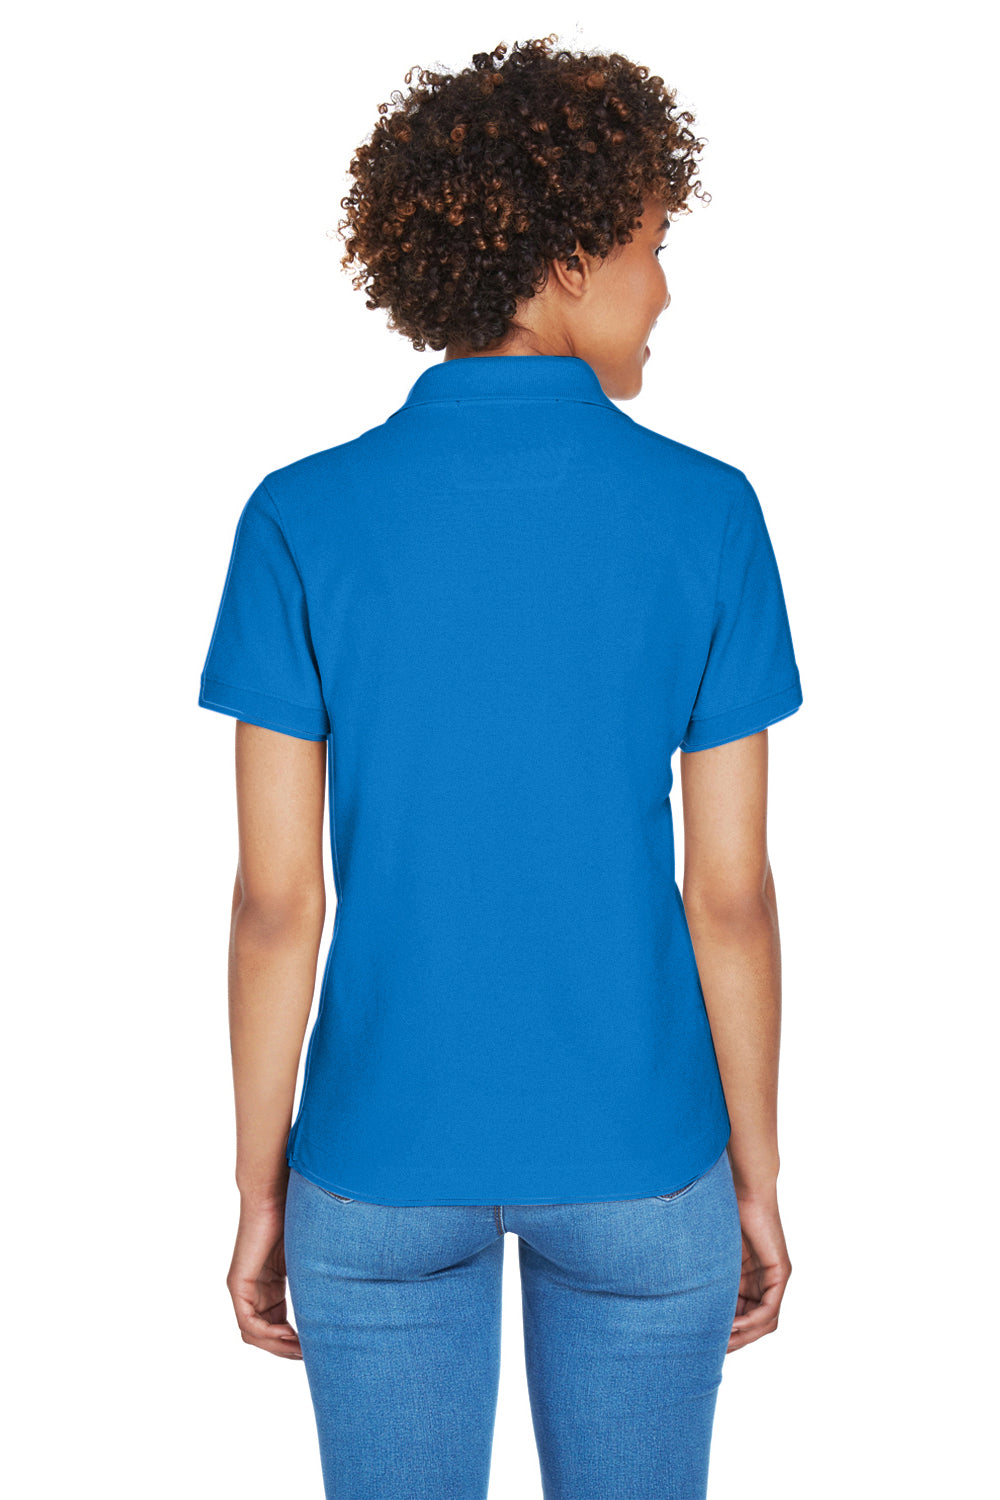 Devon & Jones D100W Womens Short Sleeve Polo Shirt Royal Blue Back